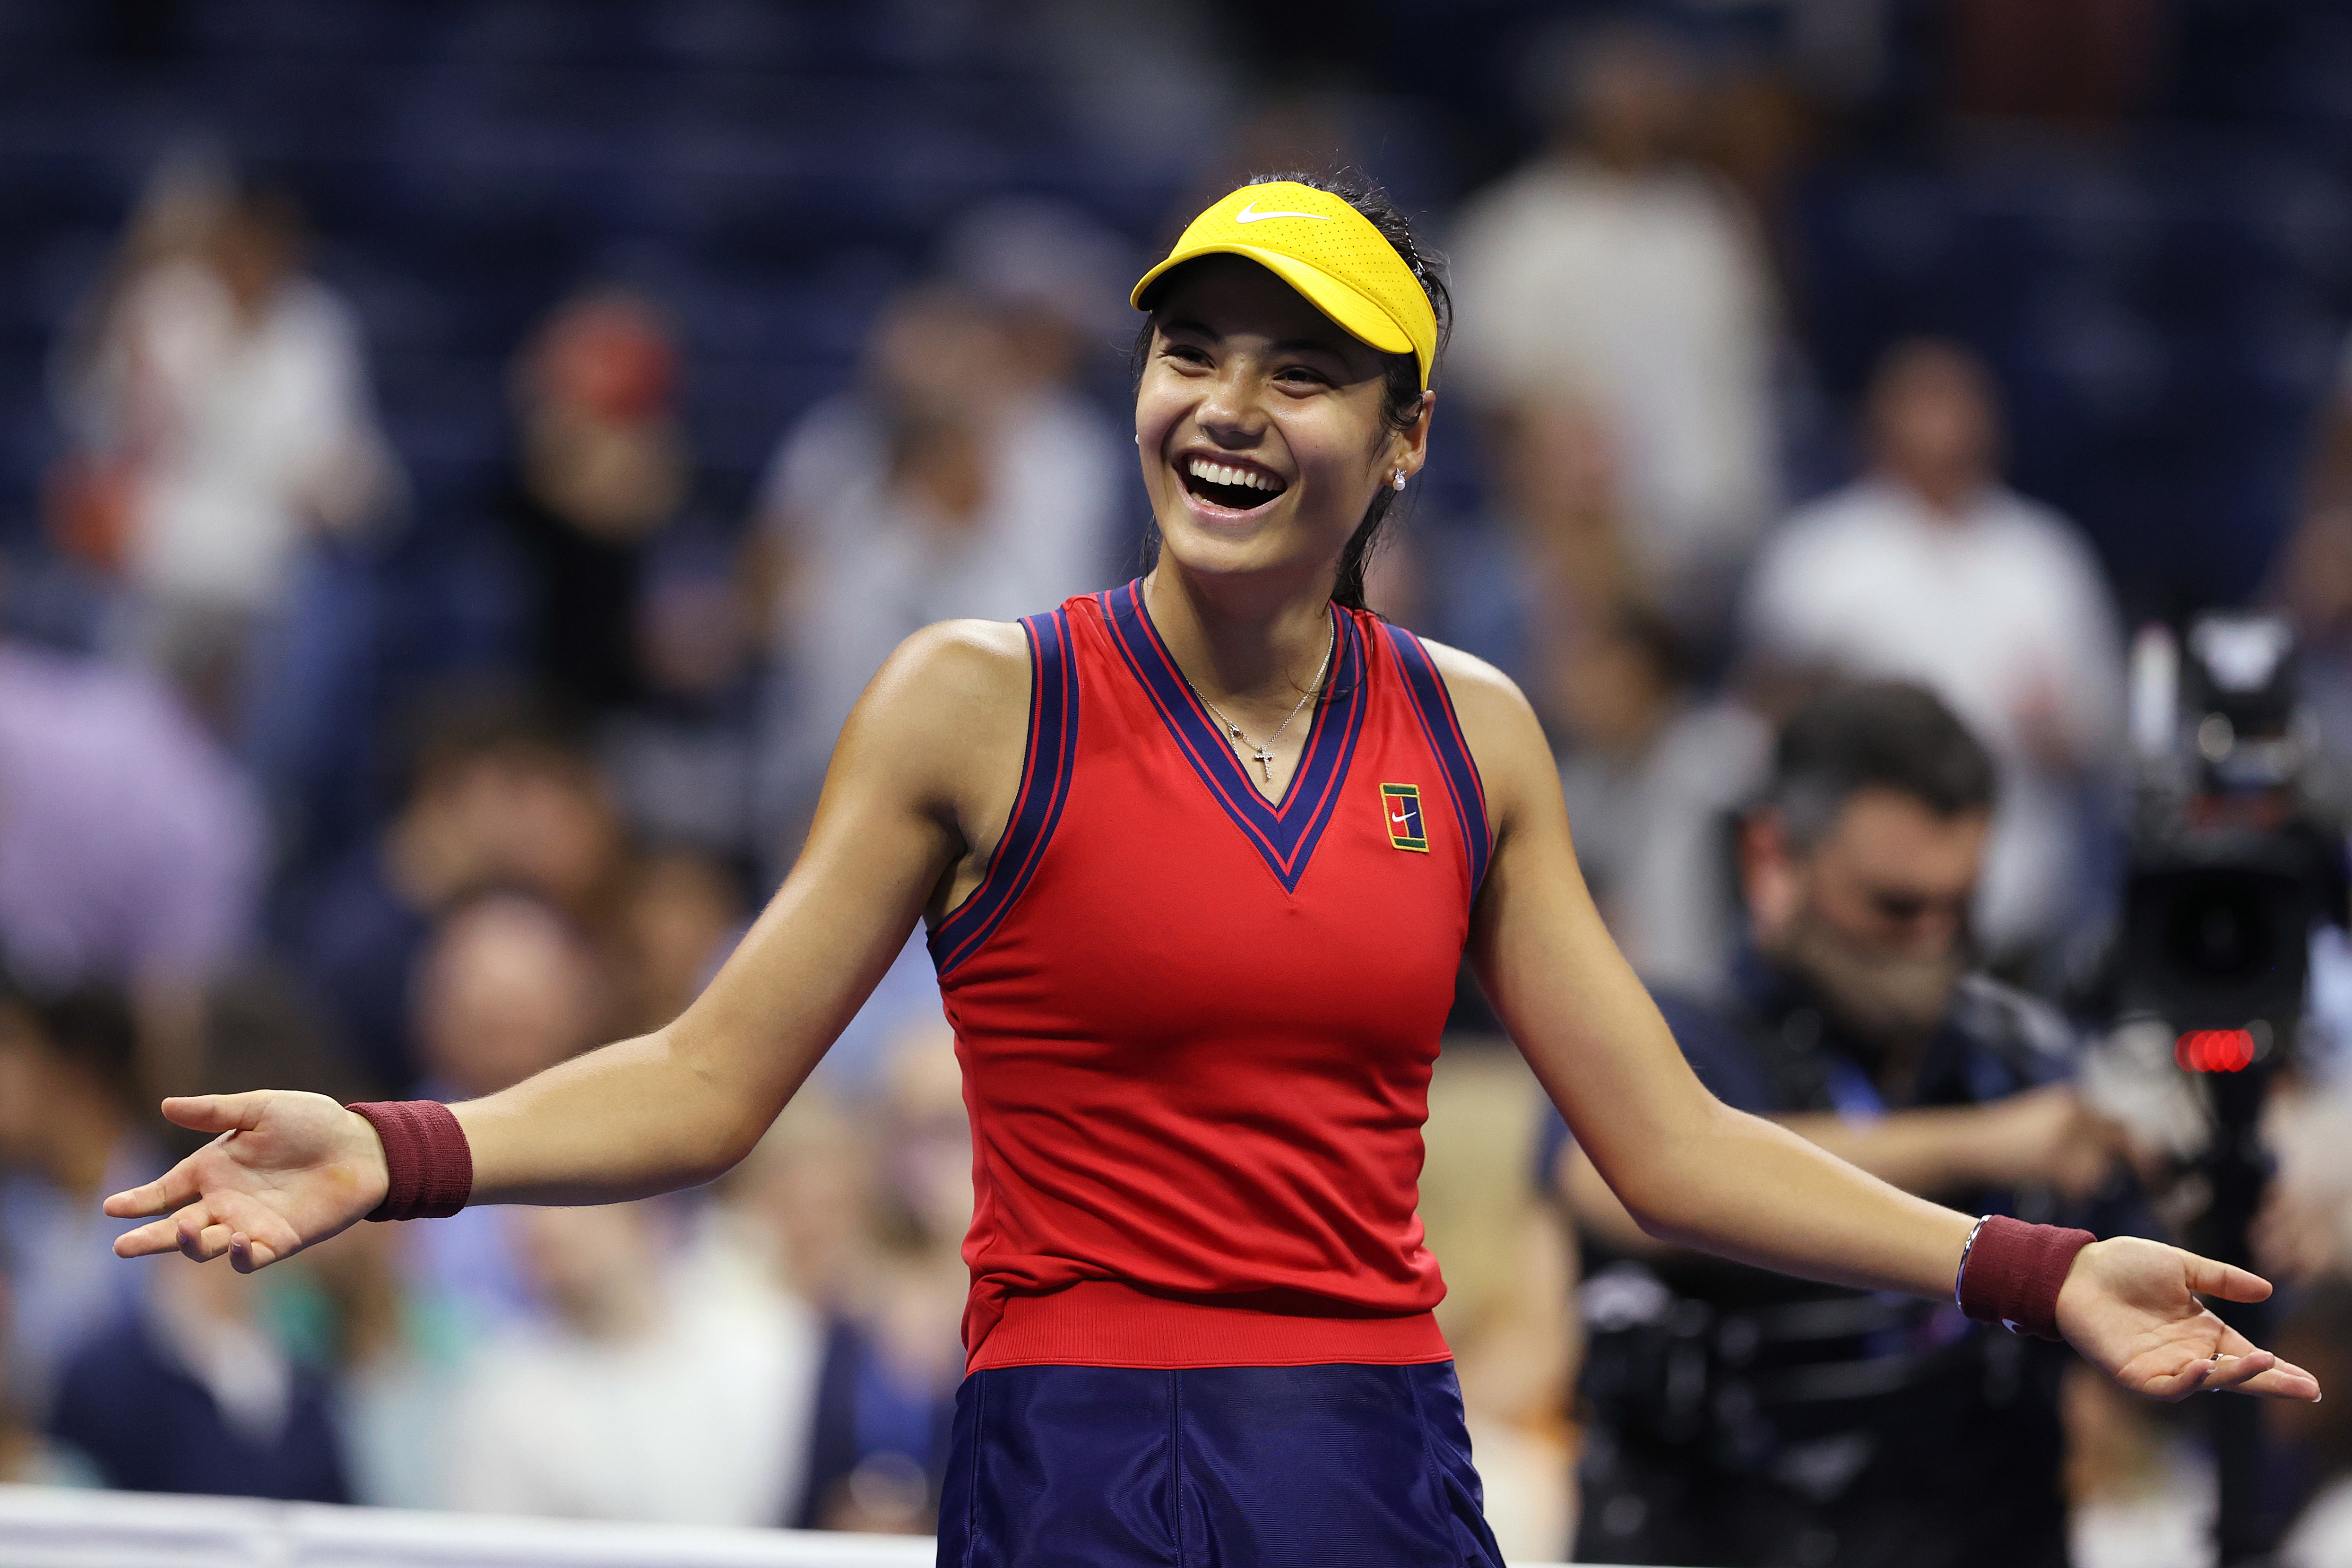 Raducanu has little time to take in her historic achievement with her most important match to come